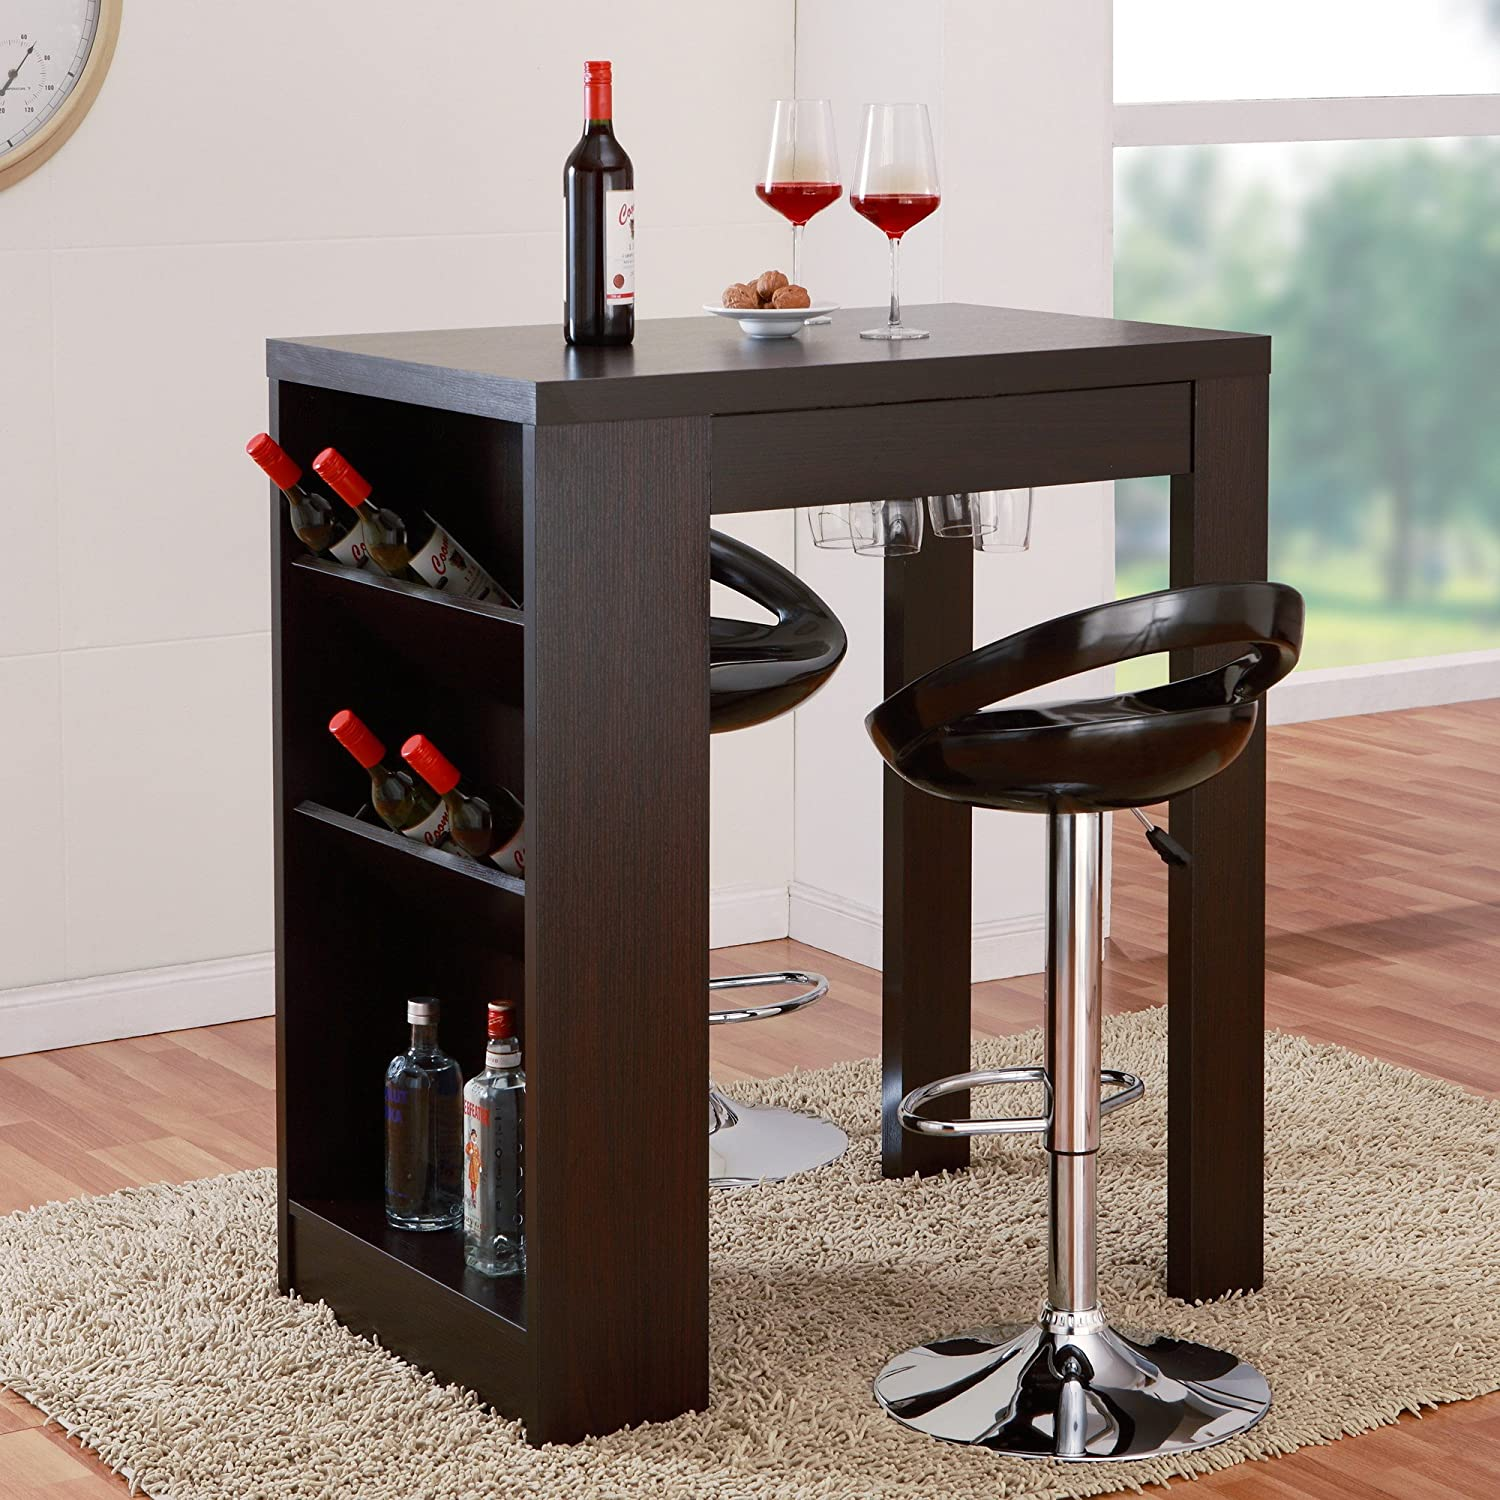 Amazon.com   Hokku Designs Geardo Wine Bar Table U0026 Server Home Furniture U0026  Decor With Integrated Metal Racks Accommodate Up To 9 Standard Size  Glasses, ...